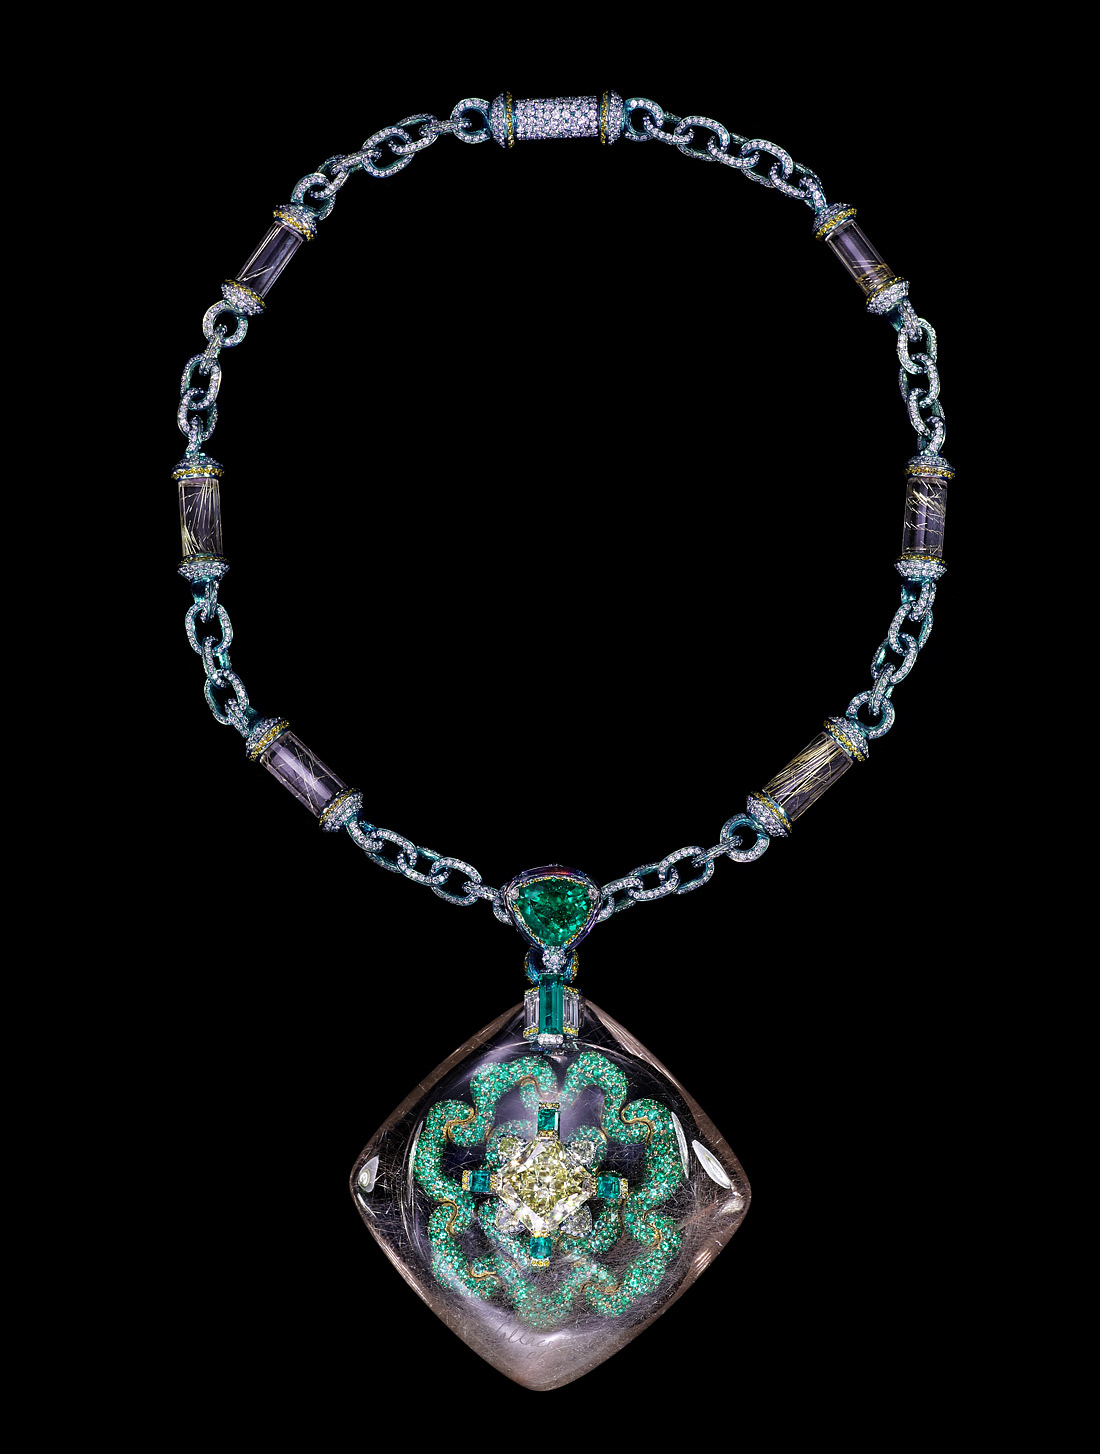 Wallace Chan Secret Abyss necklace with a yellow diamond of 10.05 cts set in a rutilated quartz shell of 211.74ct and complemented with emeralds, fancy colored diamonds, amethysts and rutilated quartz